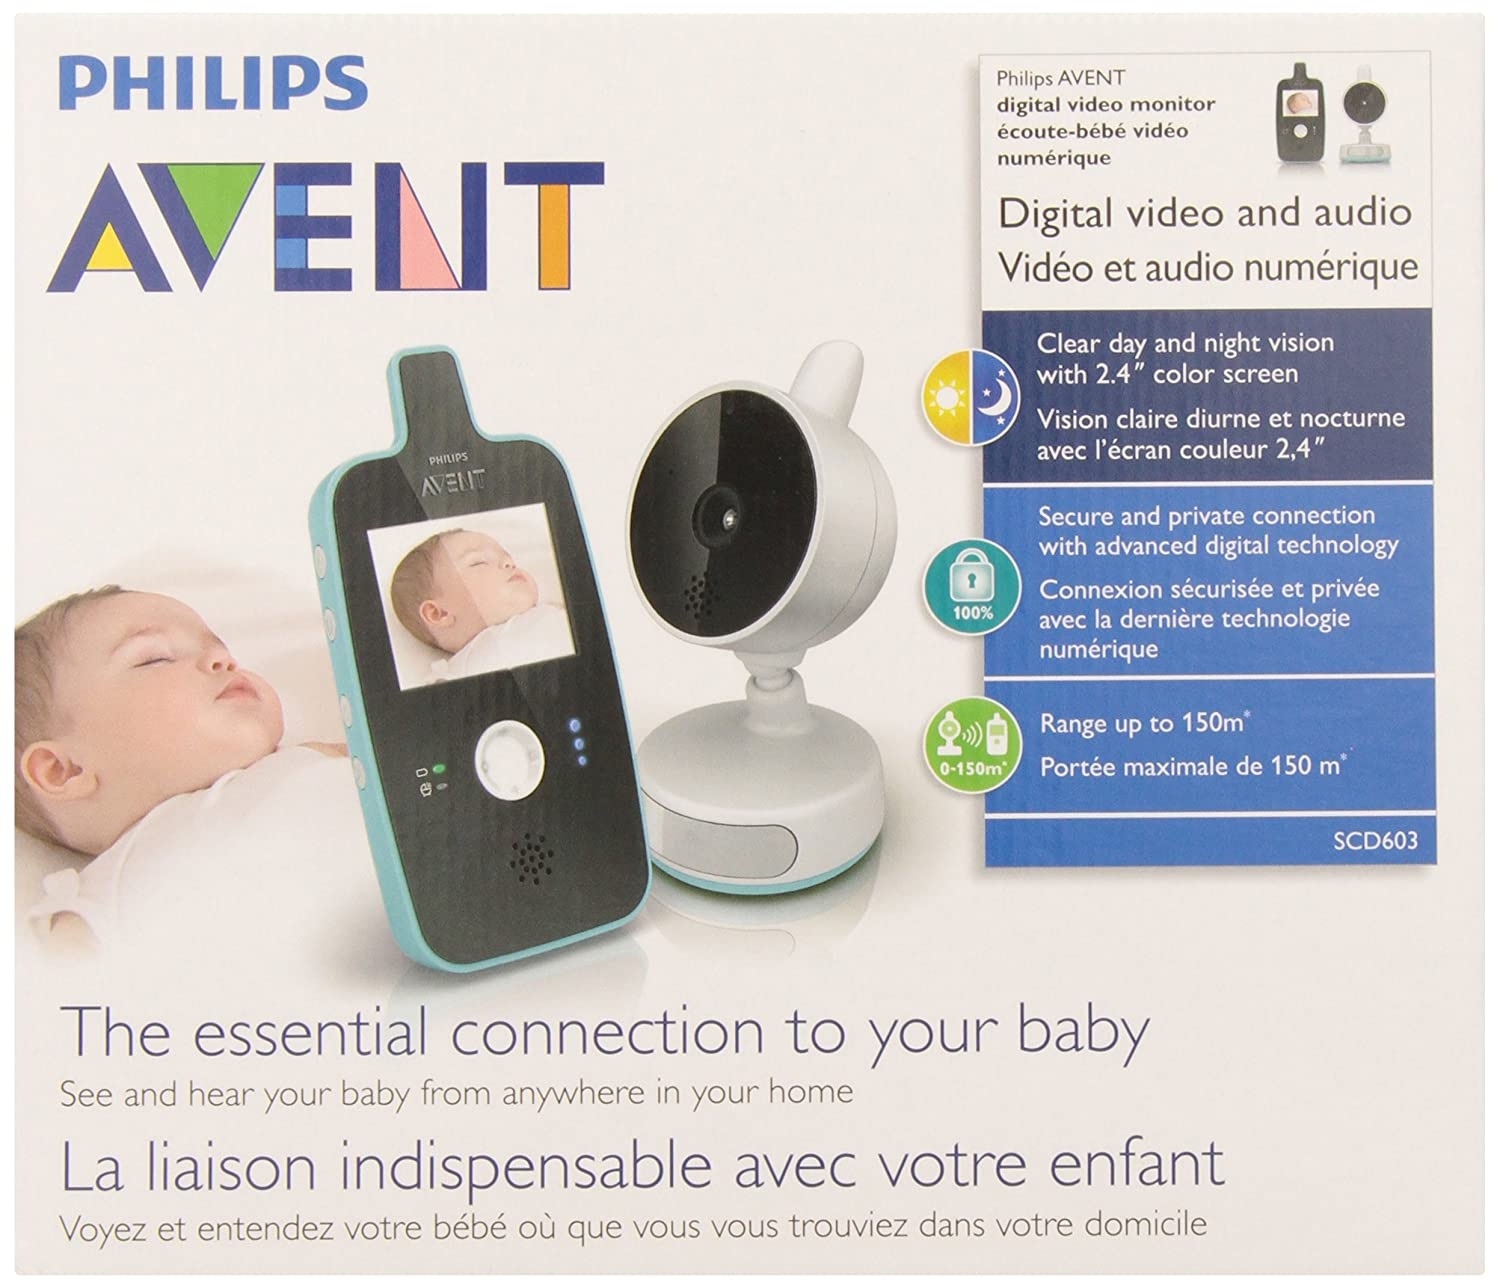 Highly Recommended High Quality Baby Monitor with Fantastic Day and Night Vision